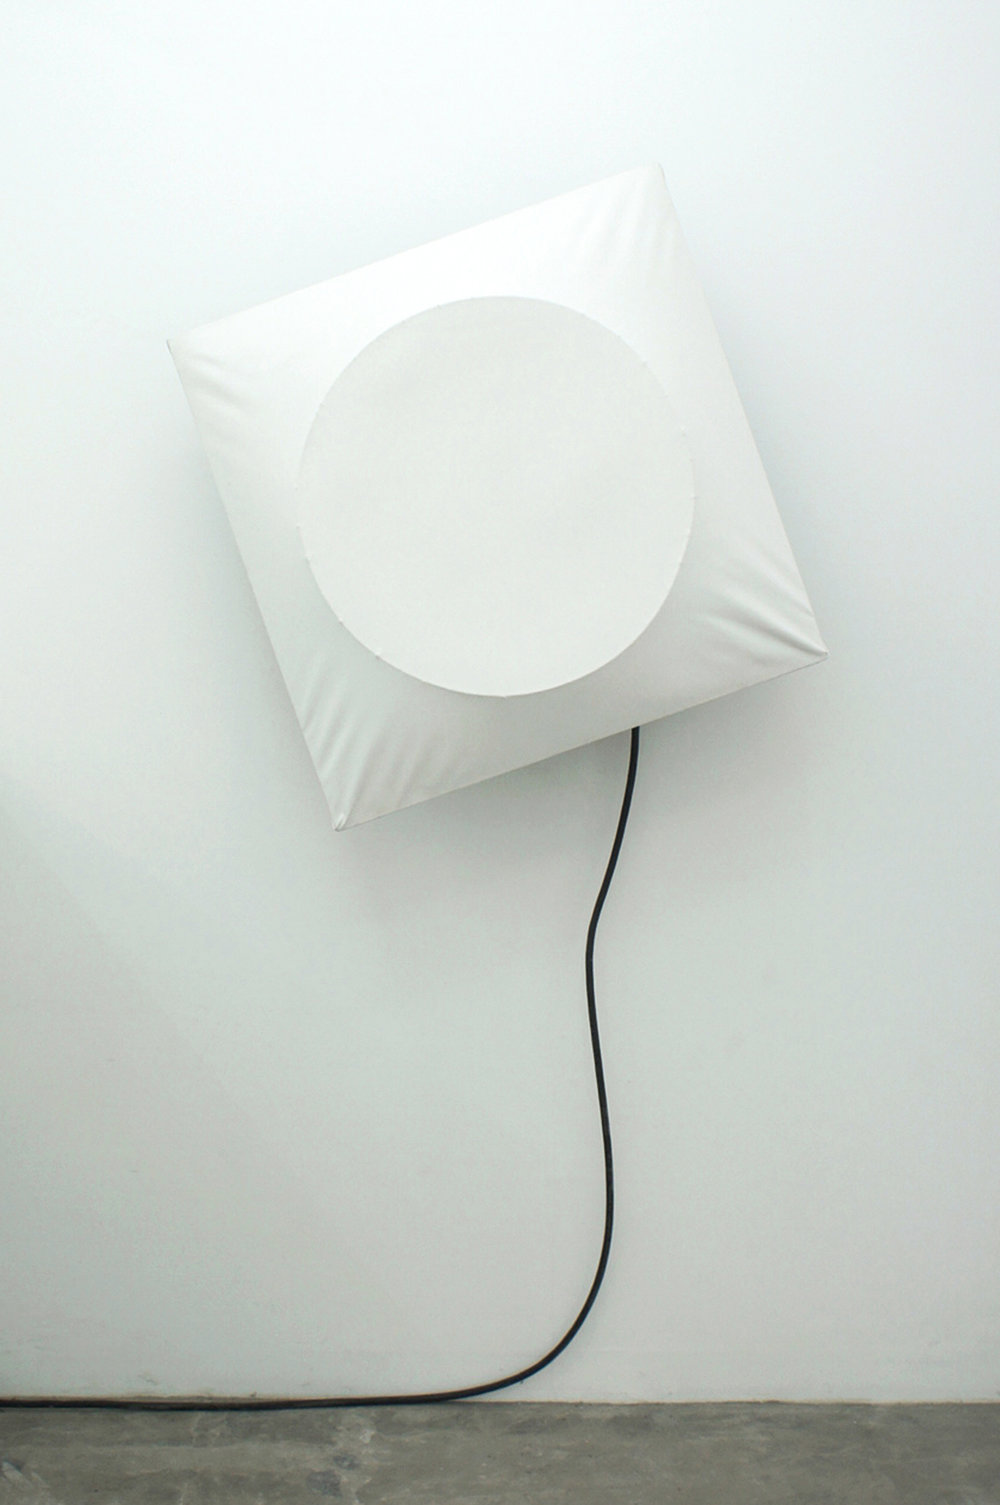 Poklong Anading  untitled, 2006/2017 canvas, exhaust fan, wood, metal 84.5 x 84.5 x 38 cm / 33.3 x 33.3 x 15 in / 2.8 x 2.8 x1.3 ft